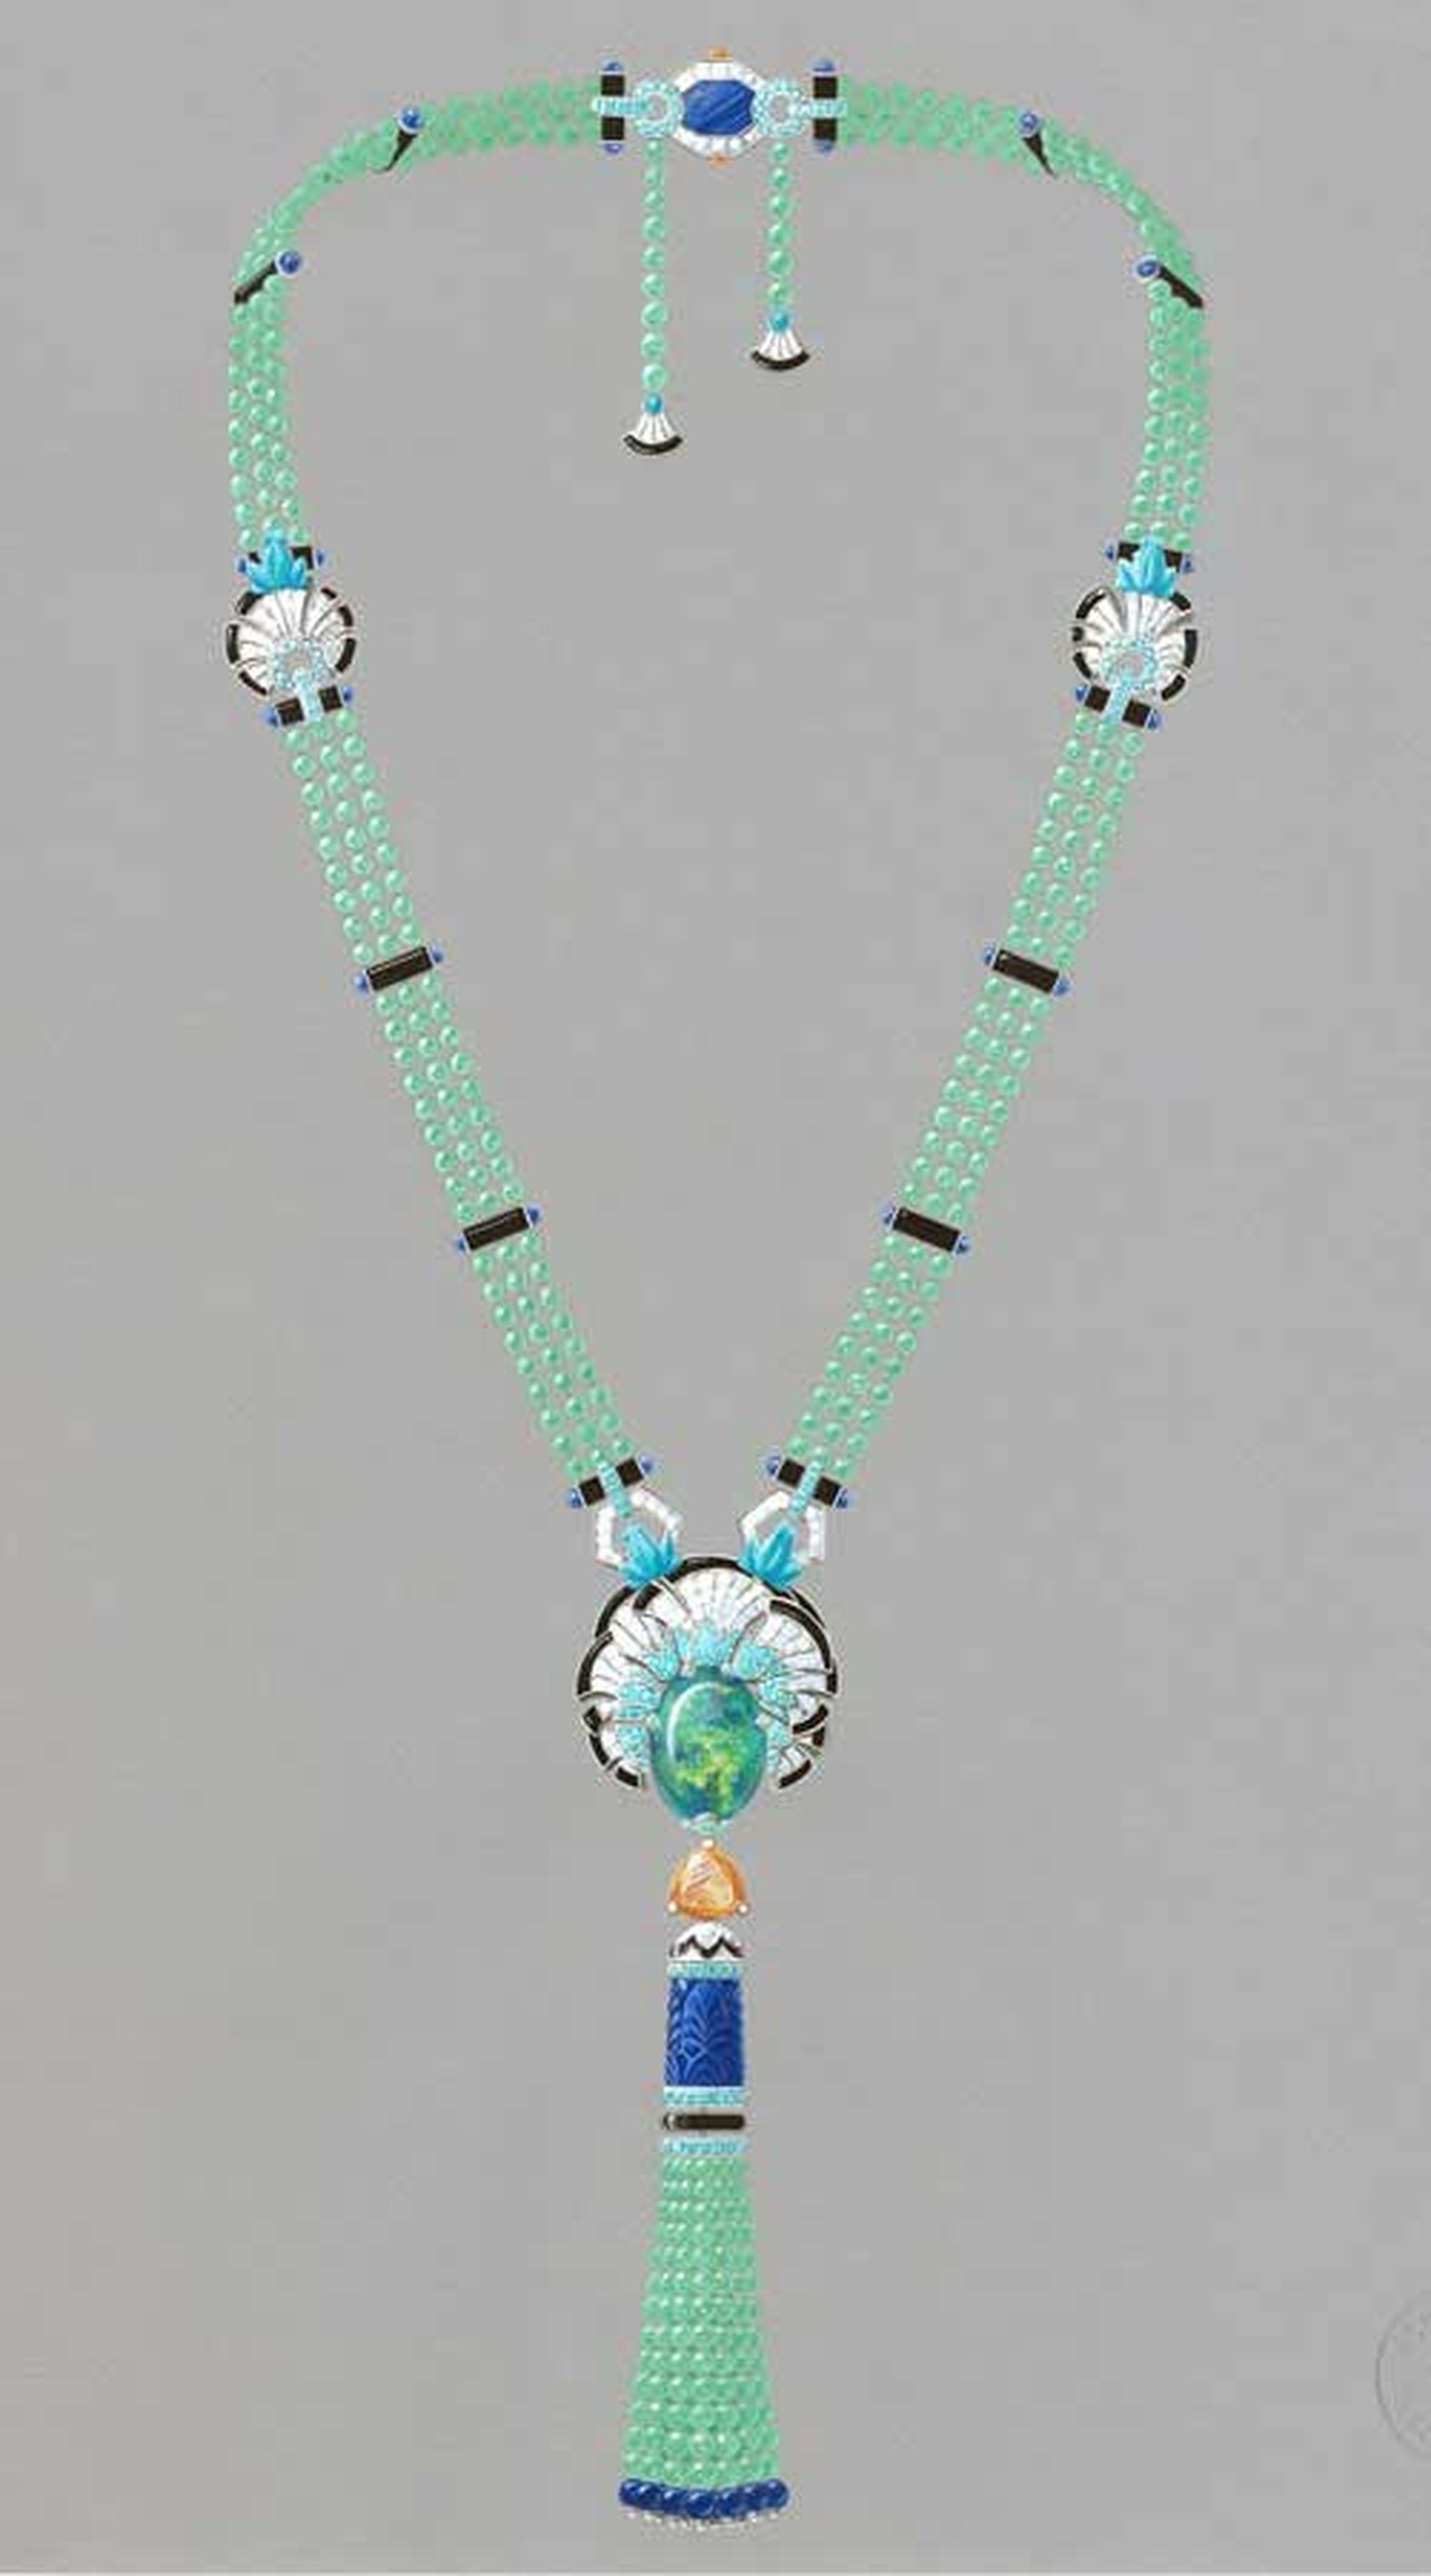 Van Cleef & Arpels Palais de la chance High Jewellery collection Lucky Legends Everlasting Light necklace featuring white gold, chrysoprase, Mandarin garnets, lapis lazuli, sapphires, diamonds, tourmalines, onyx, turquoise, emeralds and one 23.64ct. caboc